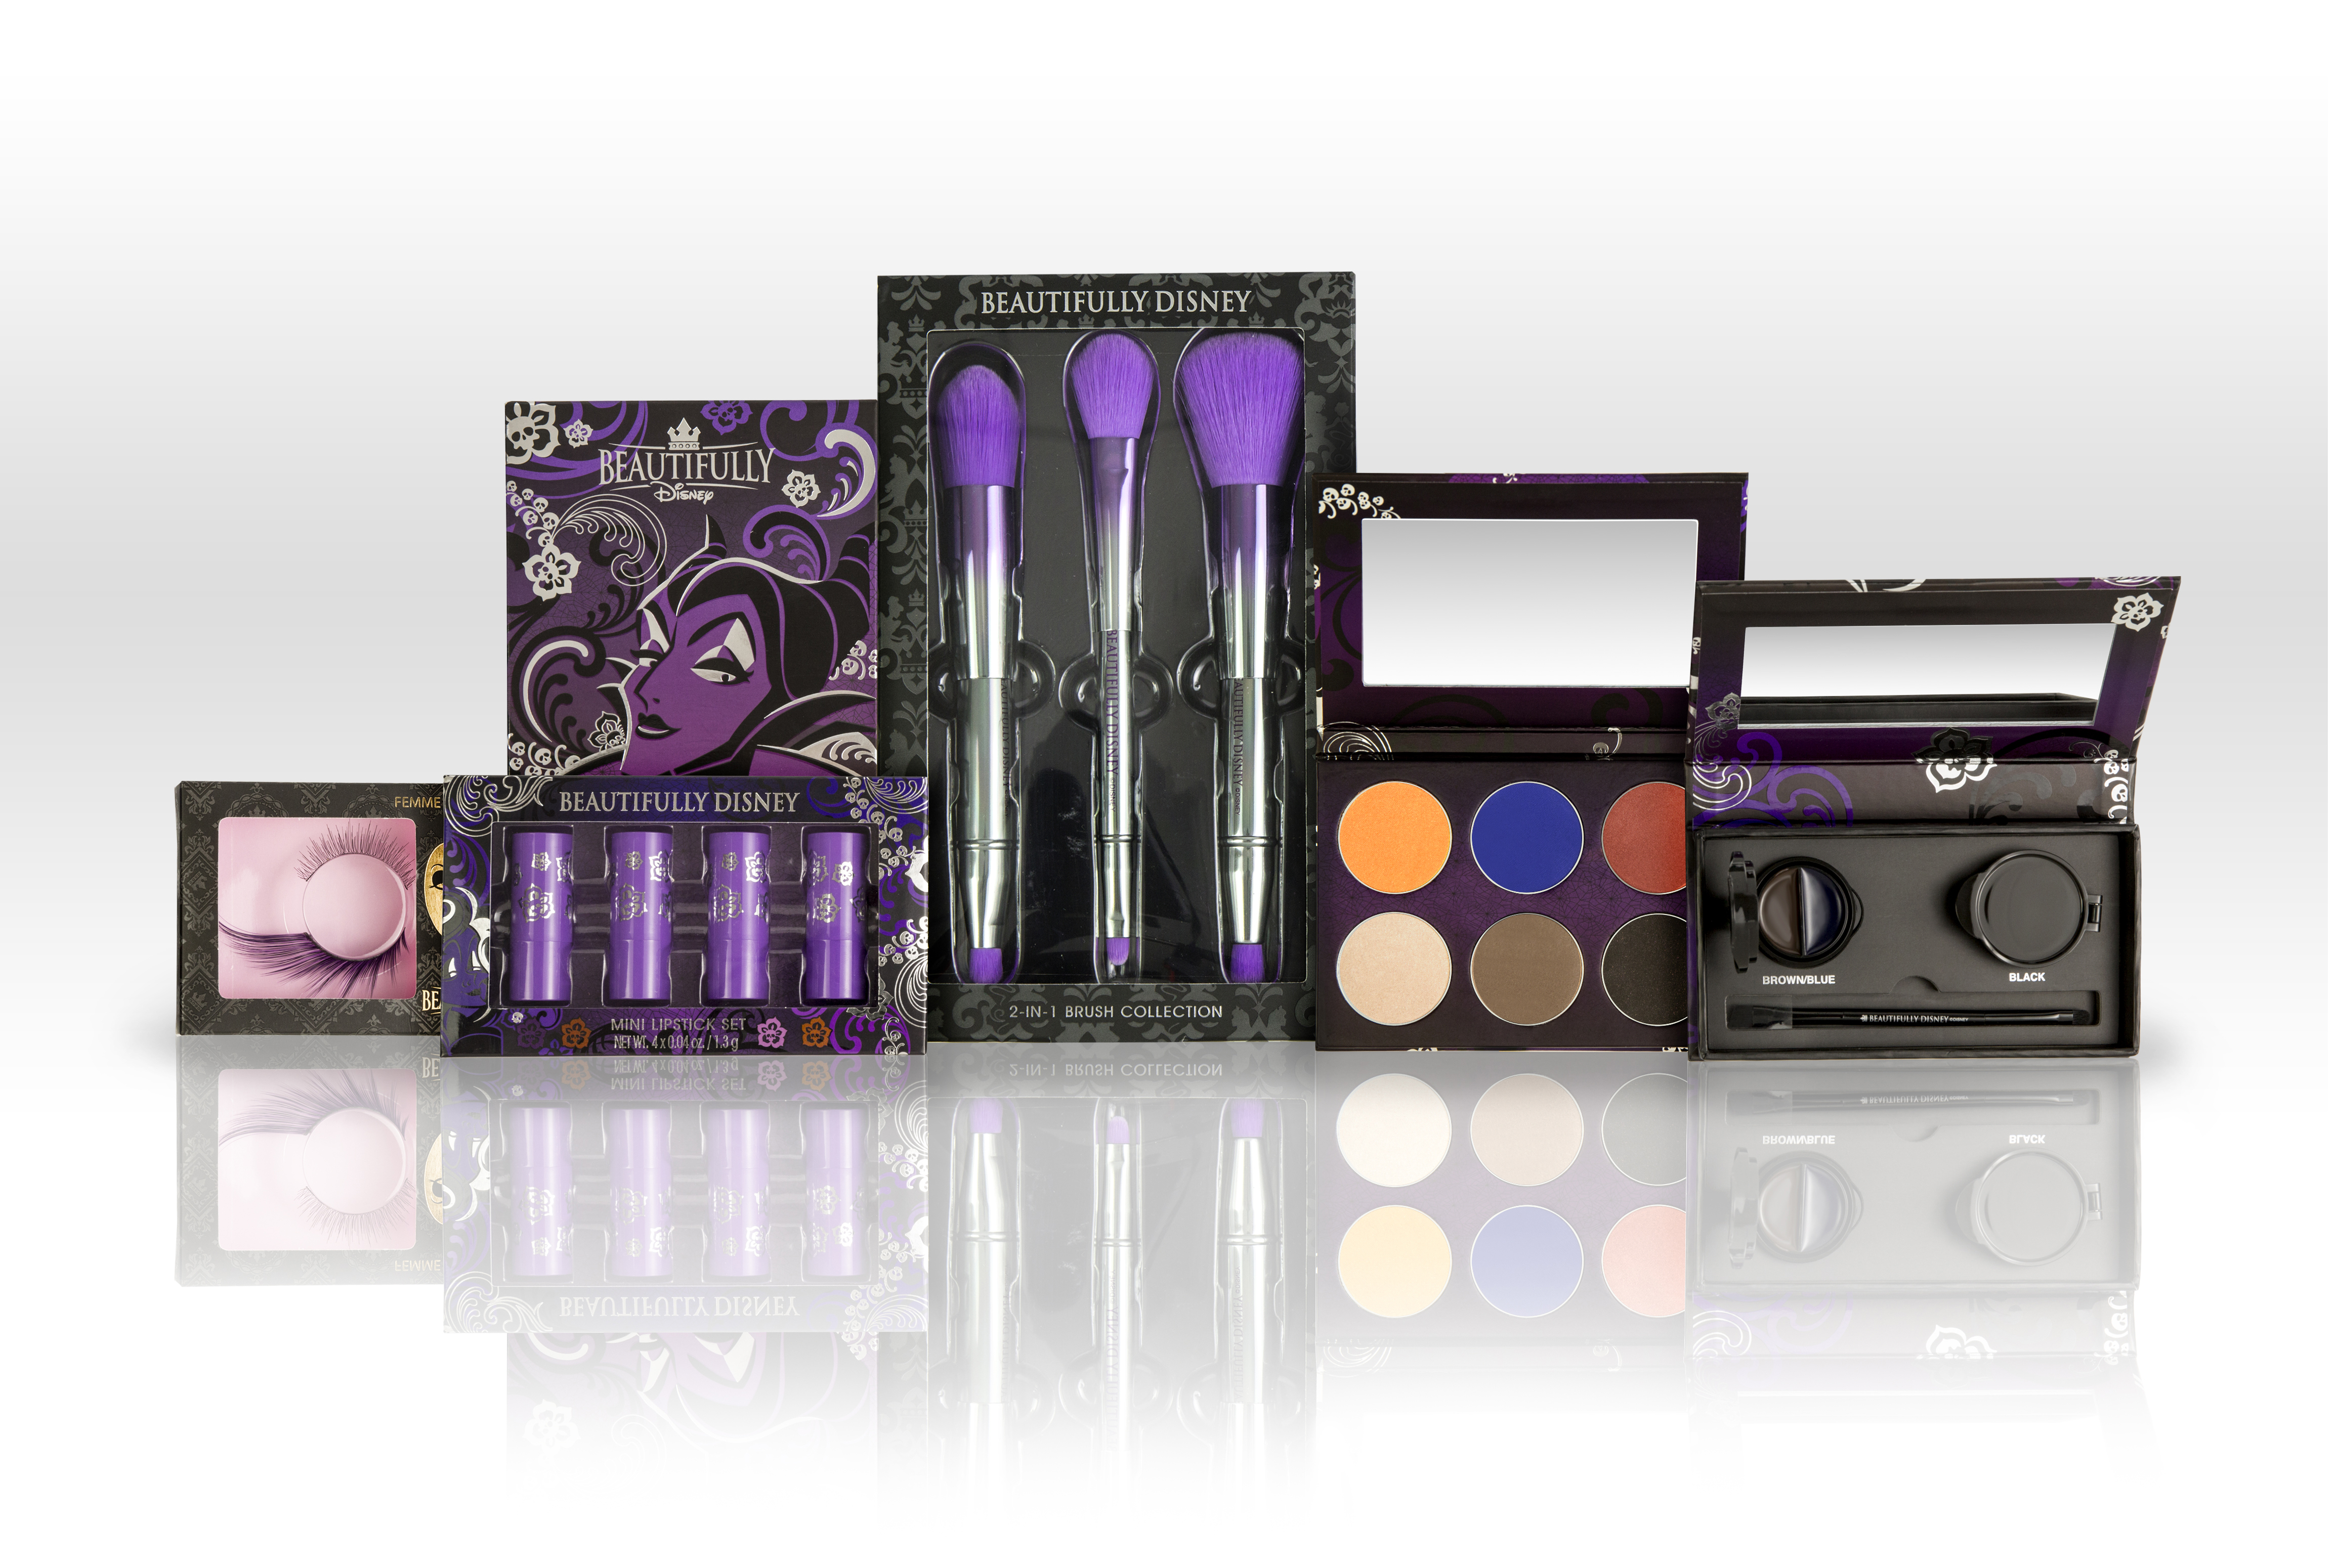 Beautifully Disney Tangled Web Makeup Collection